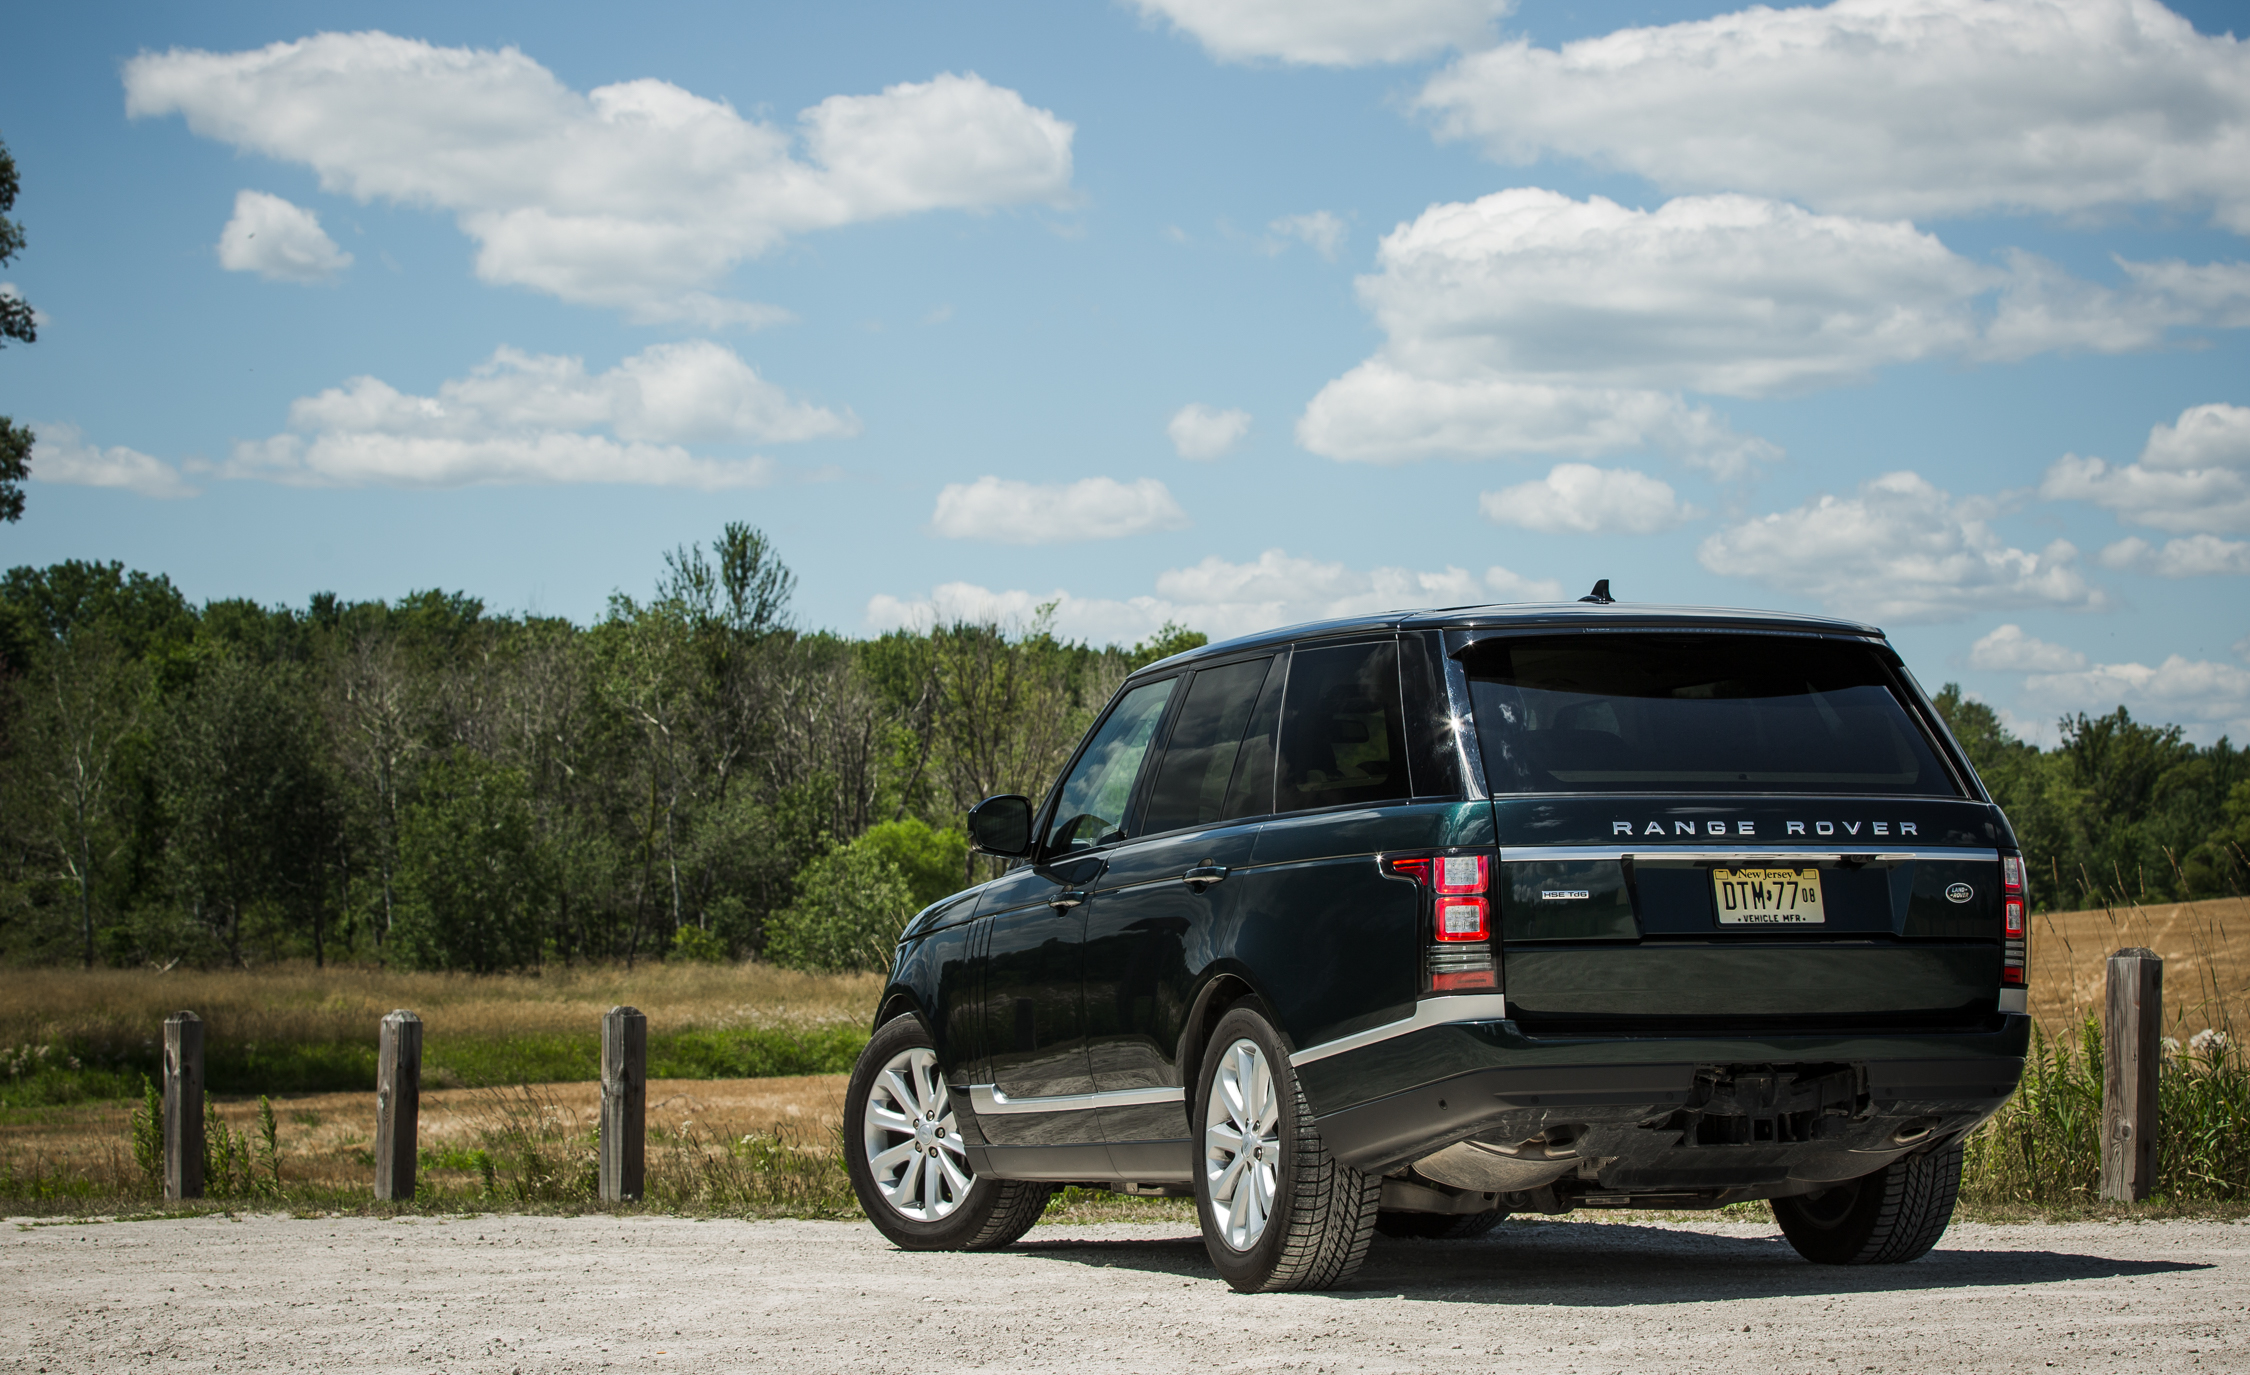 2016 Land Rover Range Rover HSE Td (Photo 1 of 8)